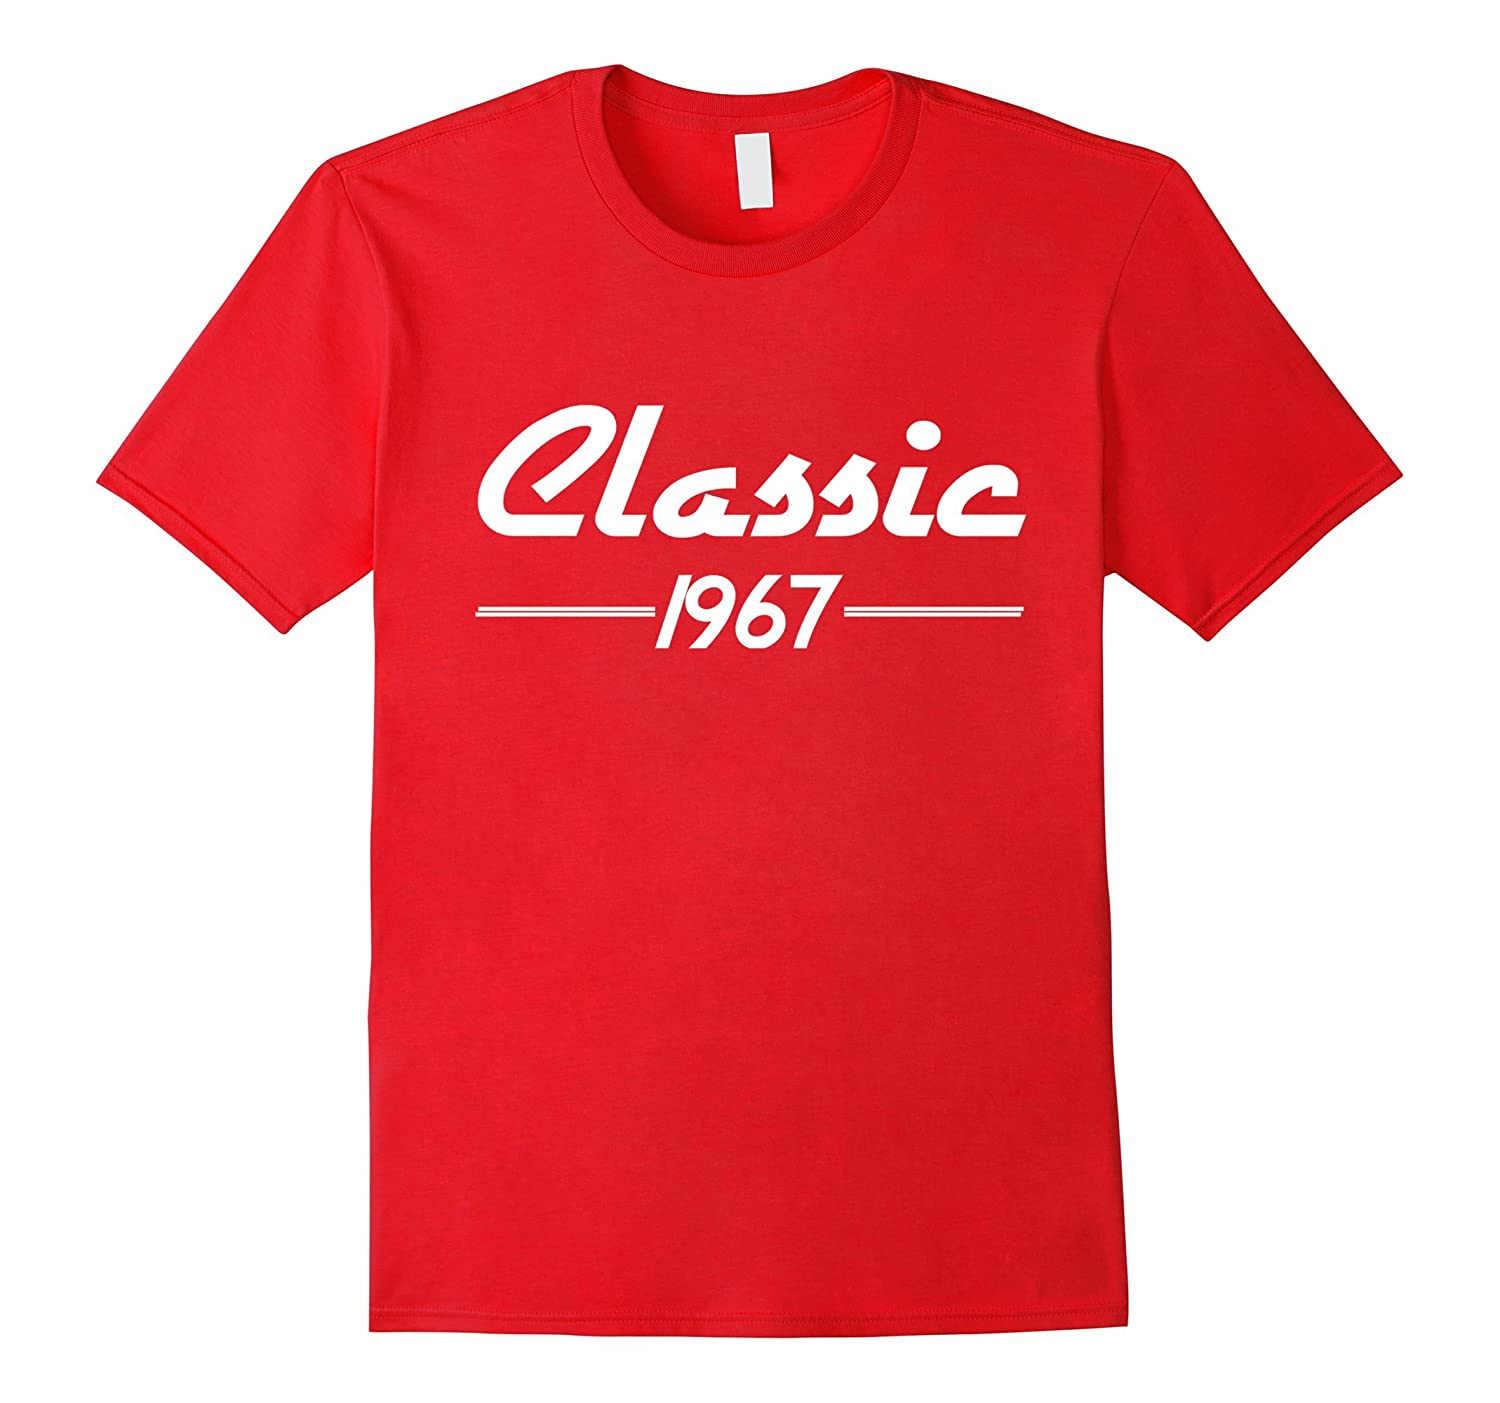 50th Birthday Shirt for Men - Classic 1967 Vintage Design-4LVS